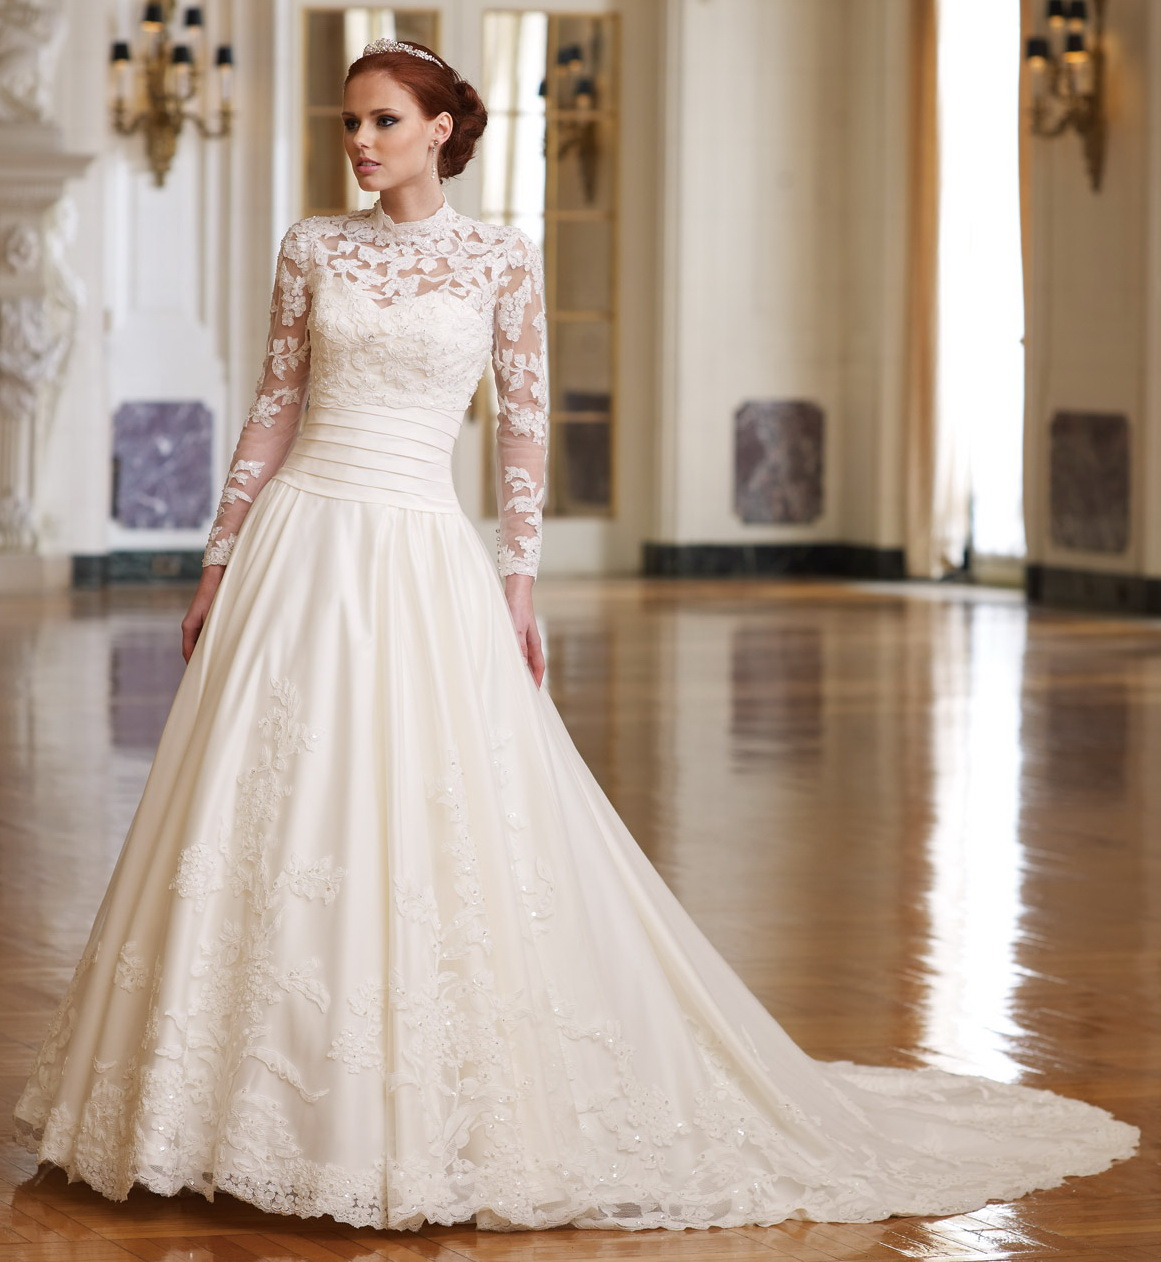 Traditional Wedding Dresses: Lace Wedding Dress